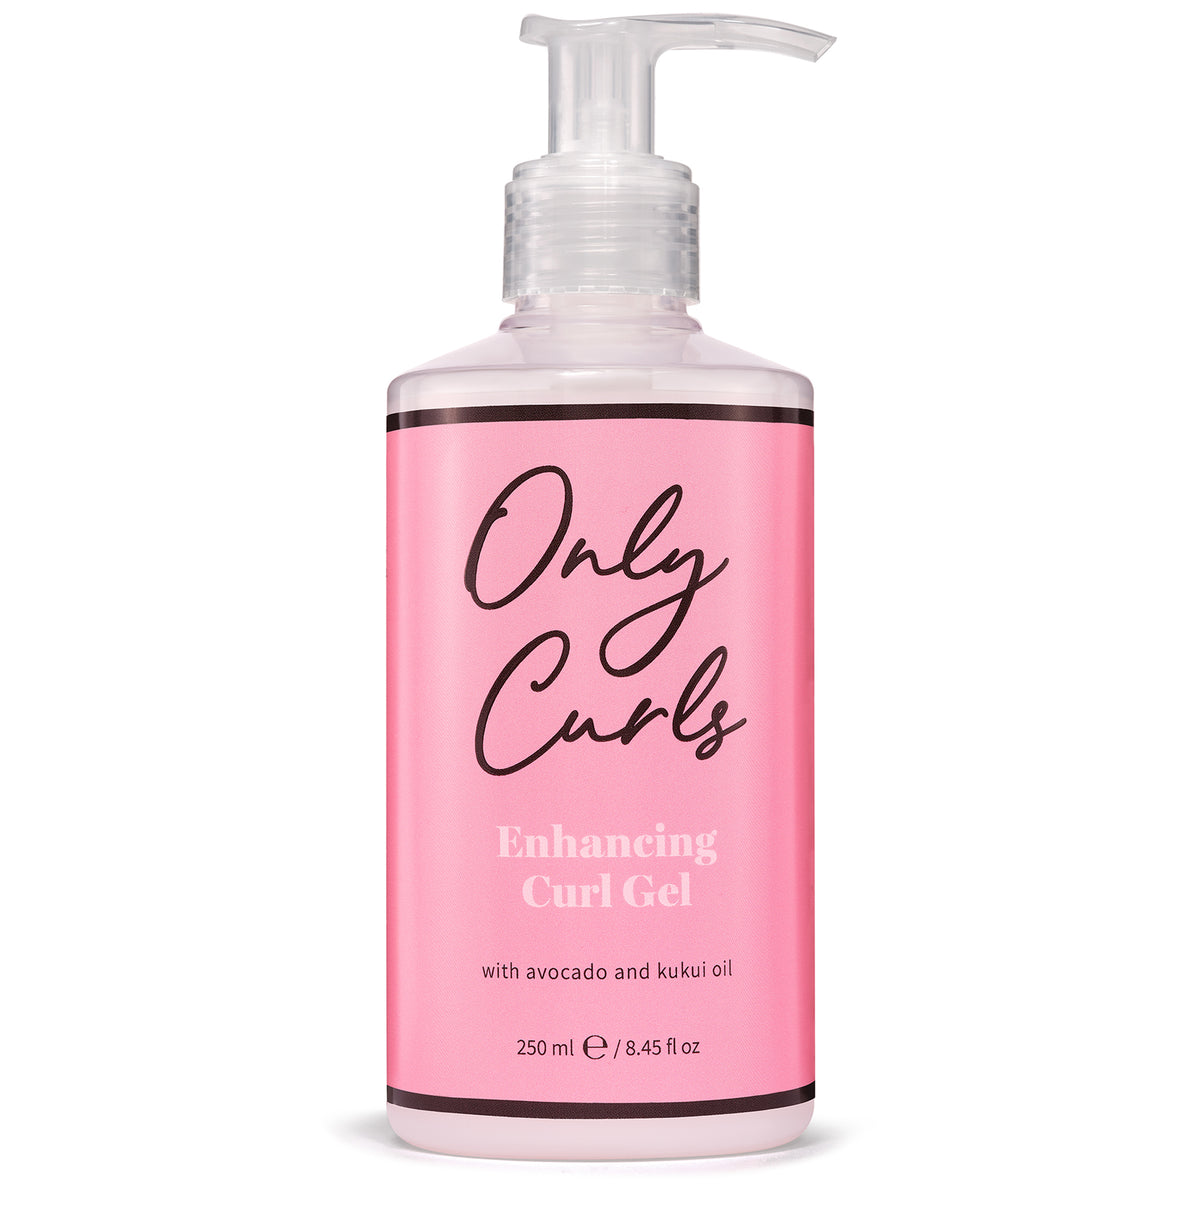 Only Curls Enhancing Curl Gel, 250ml - Only Curls